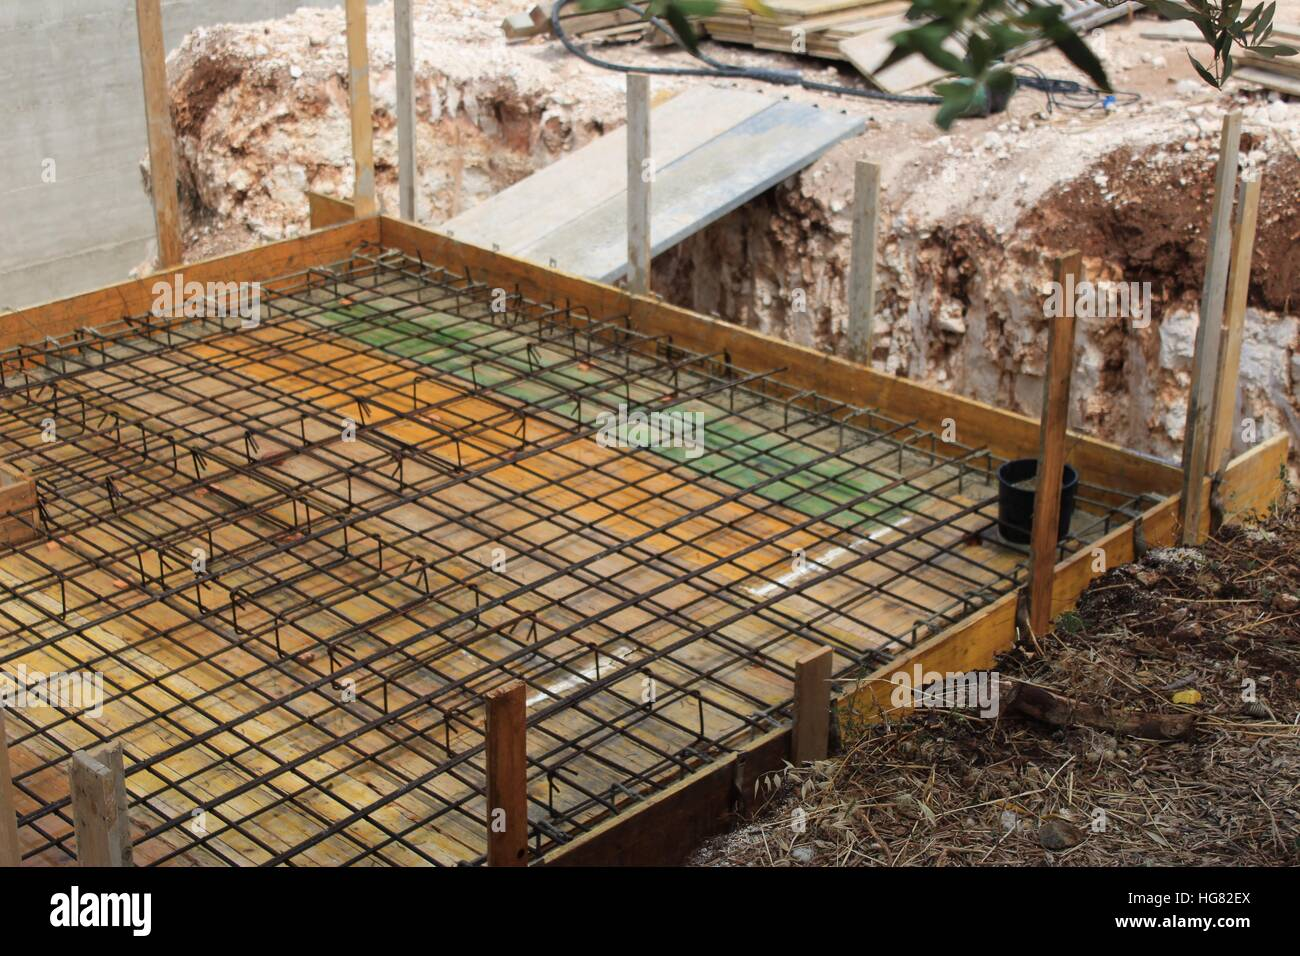 Swimming Pool Reinforcement : In ground swimming pool plant room under construction